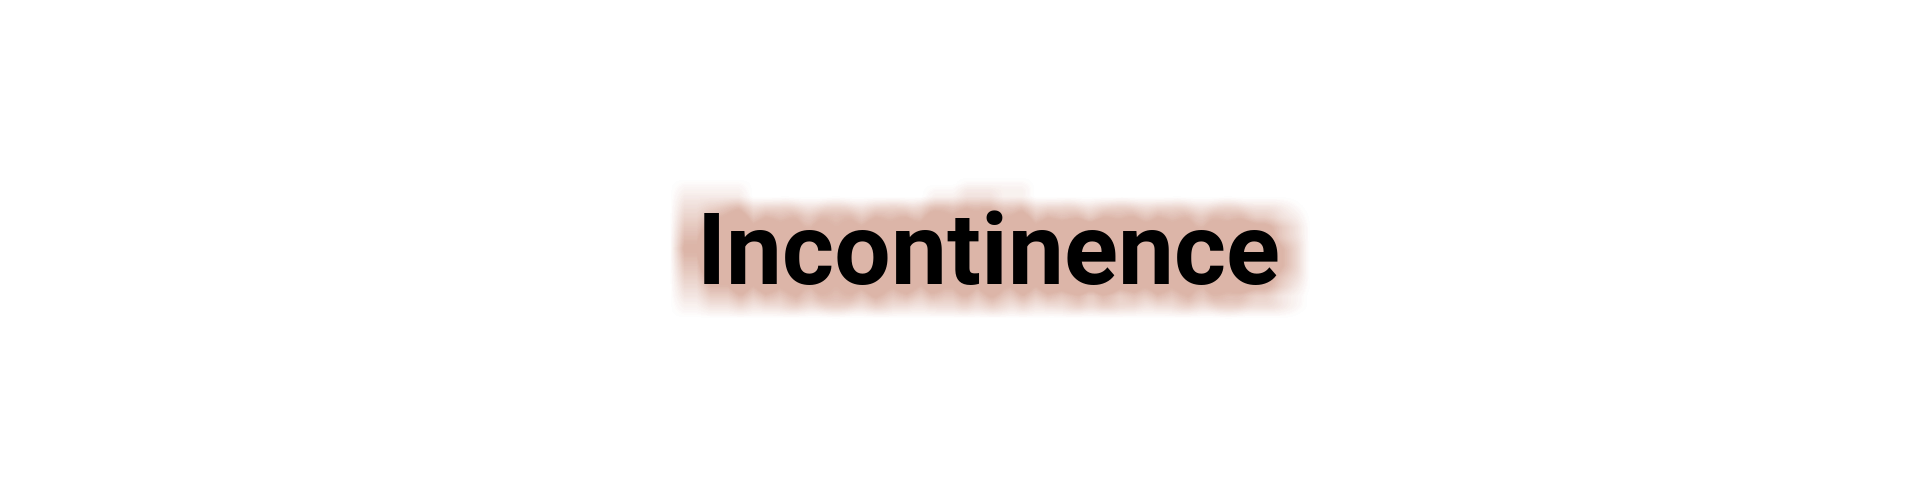 Incontinence.png